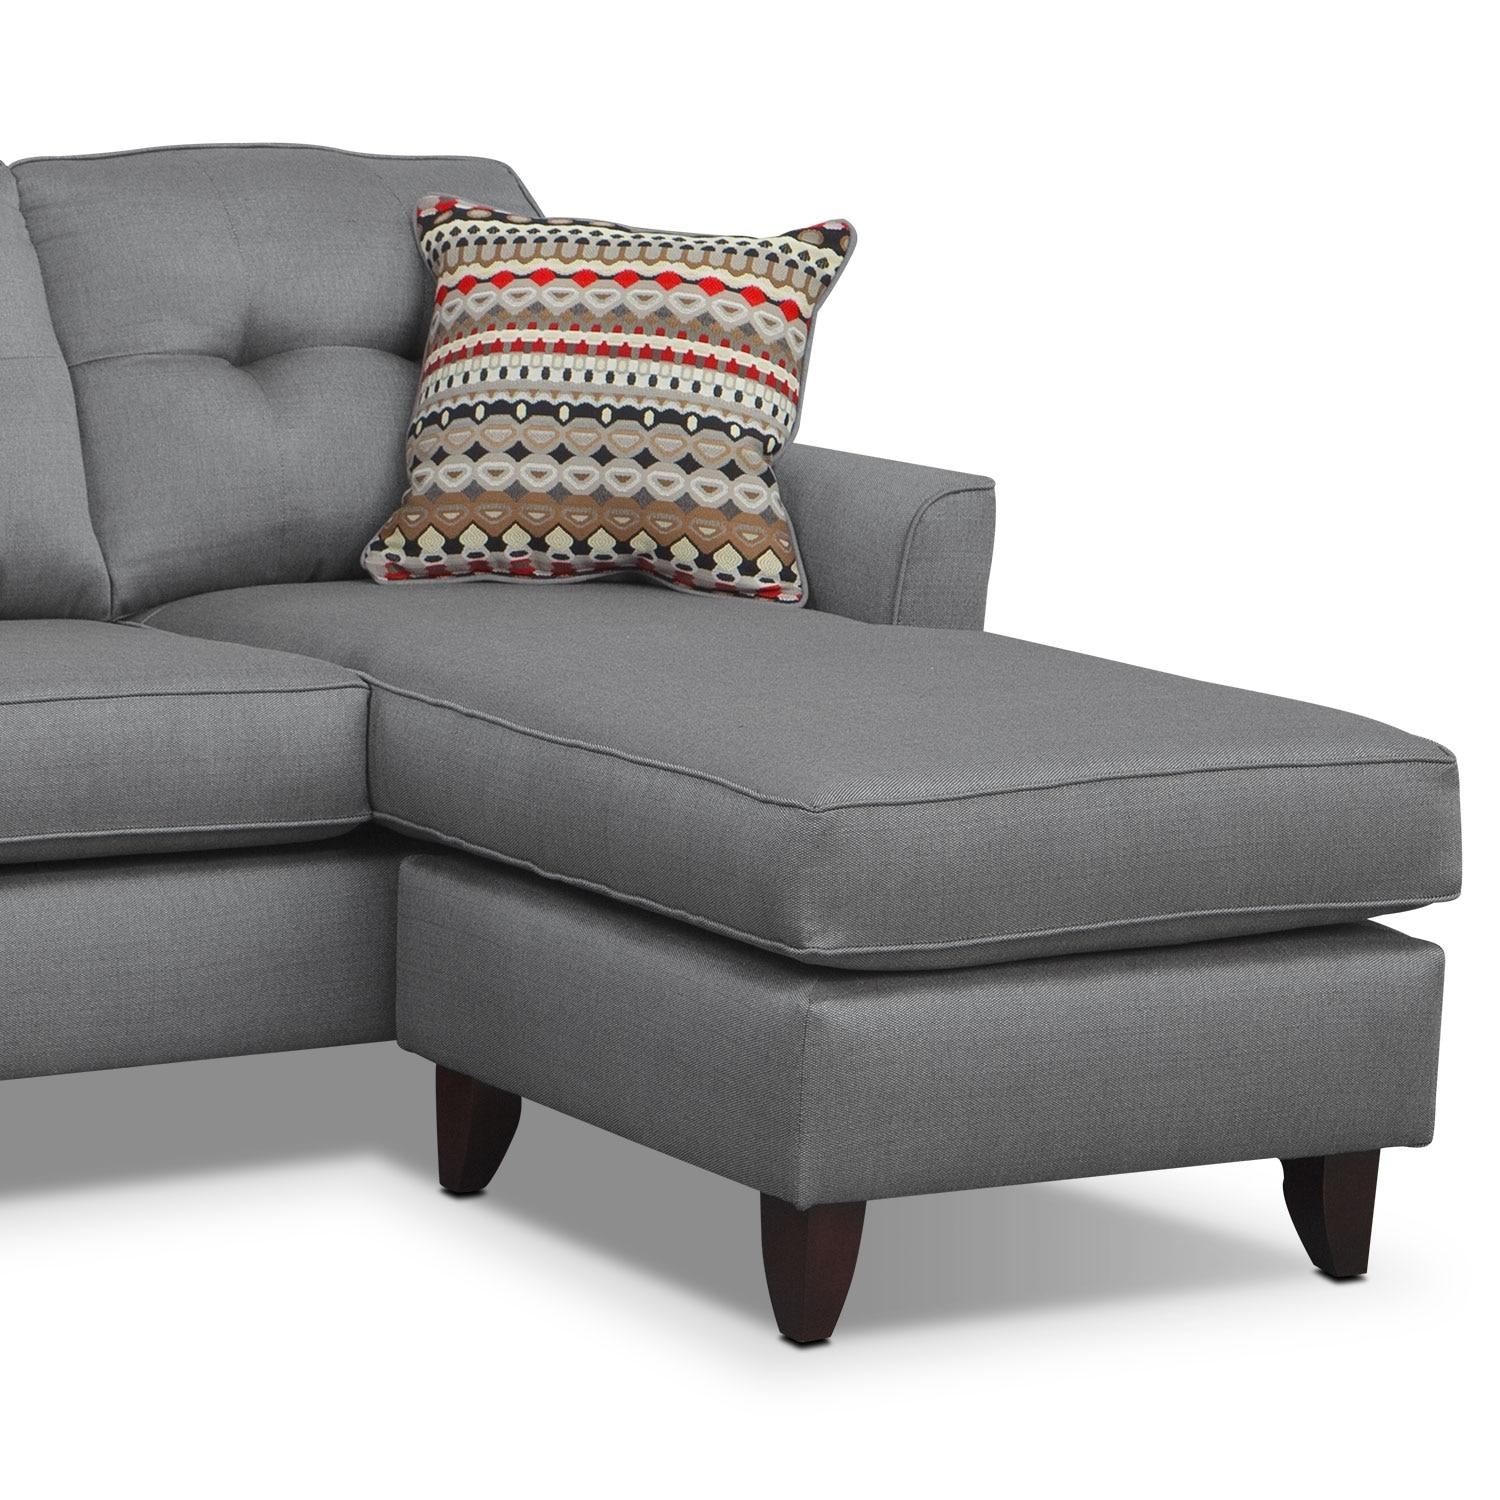 Marco Chaise Sofa – Gray | American Signature Furniture For Chaise Sofas (Image 12 of 20)